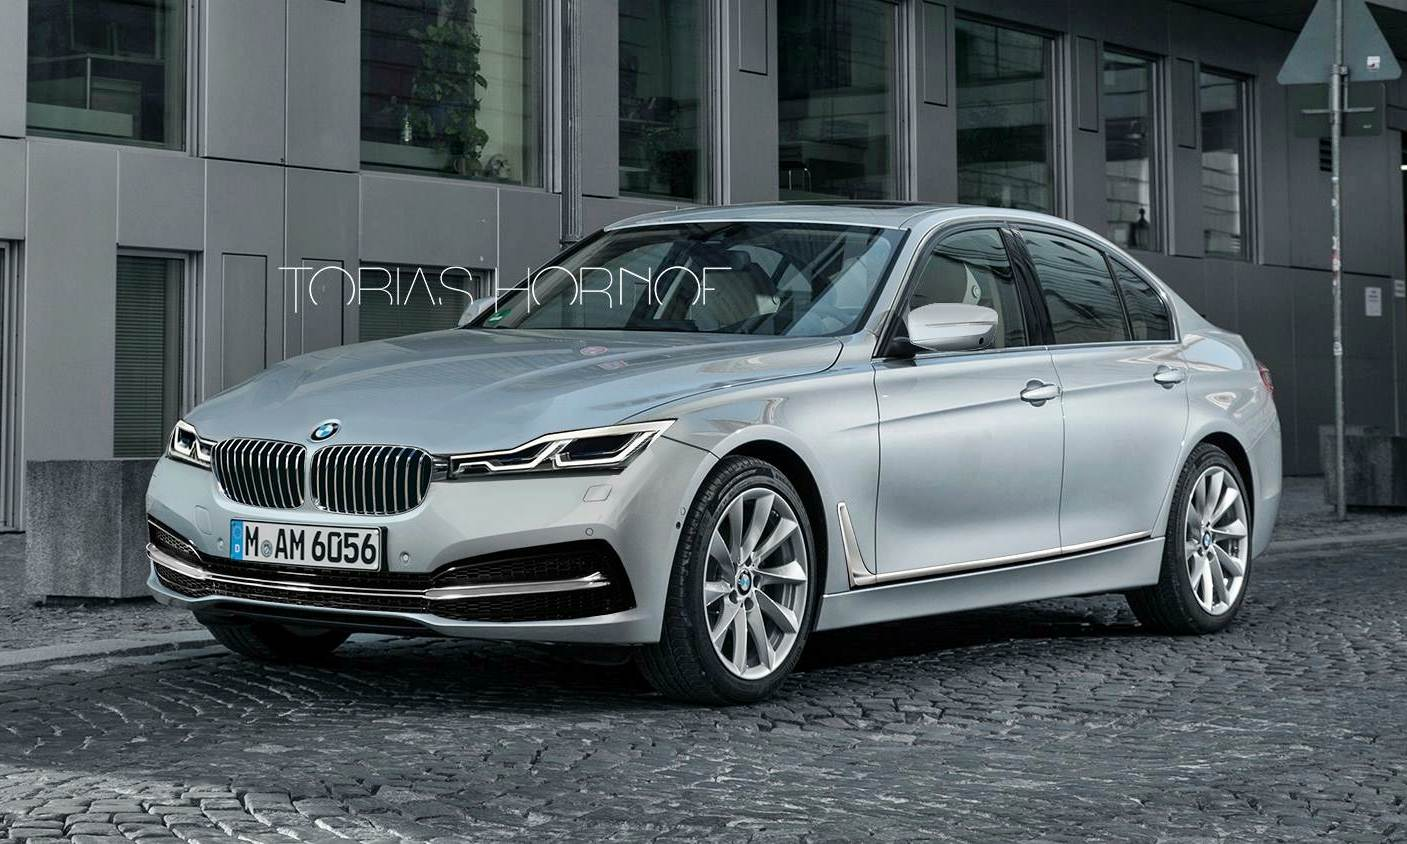 2018 bmw 3 series g20 sedan auto bmw review. Black Bedroom Furniture Sets. Home Design Ideas